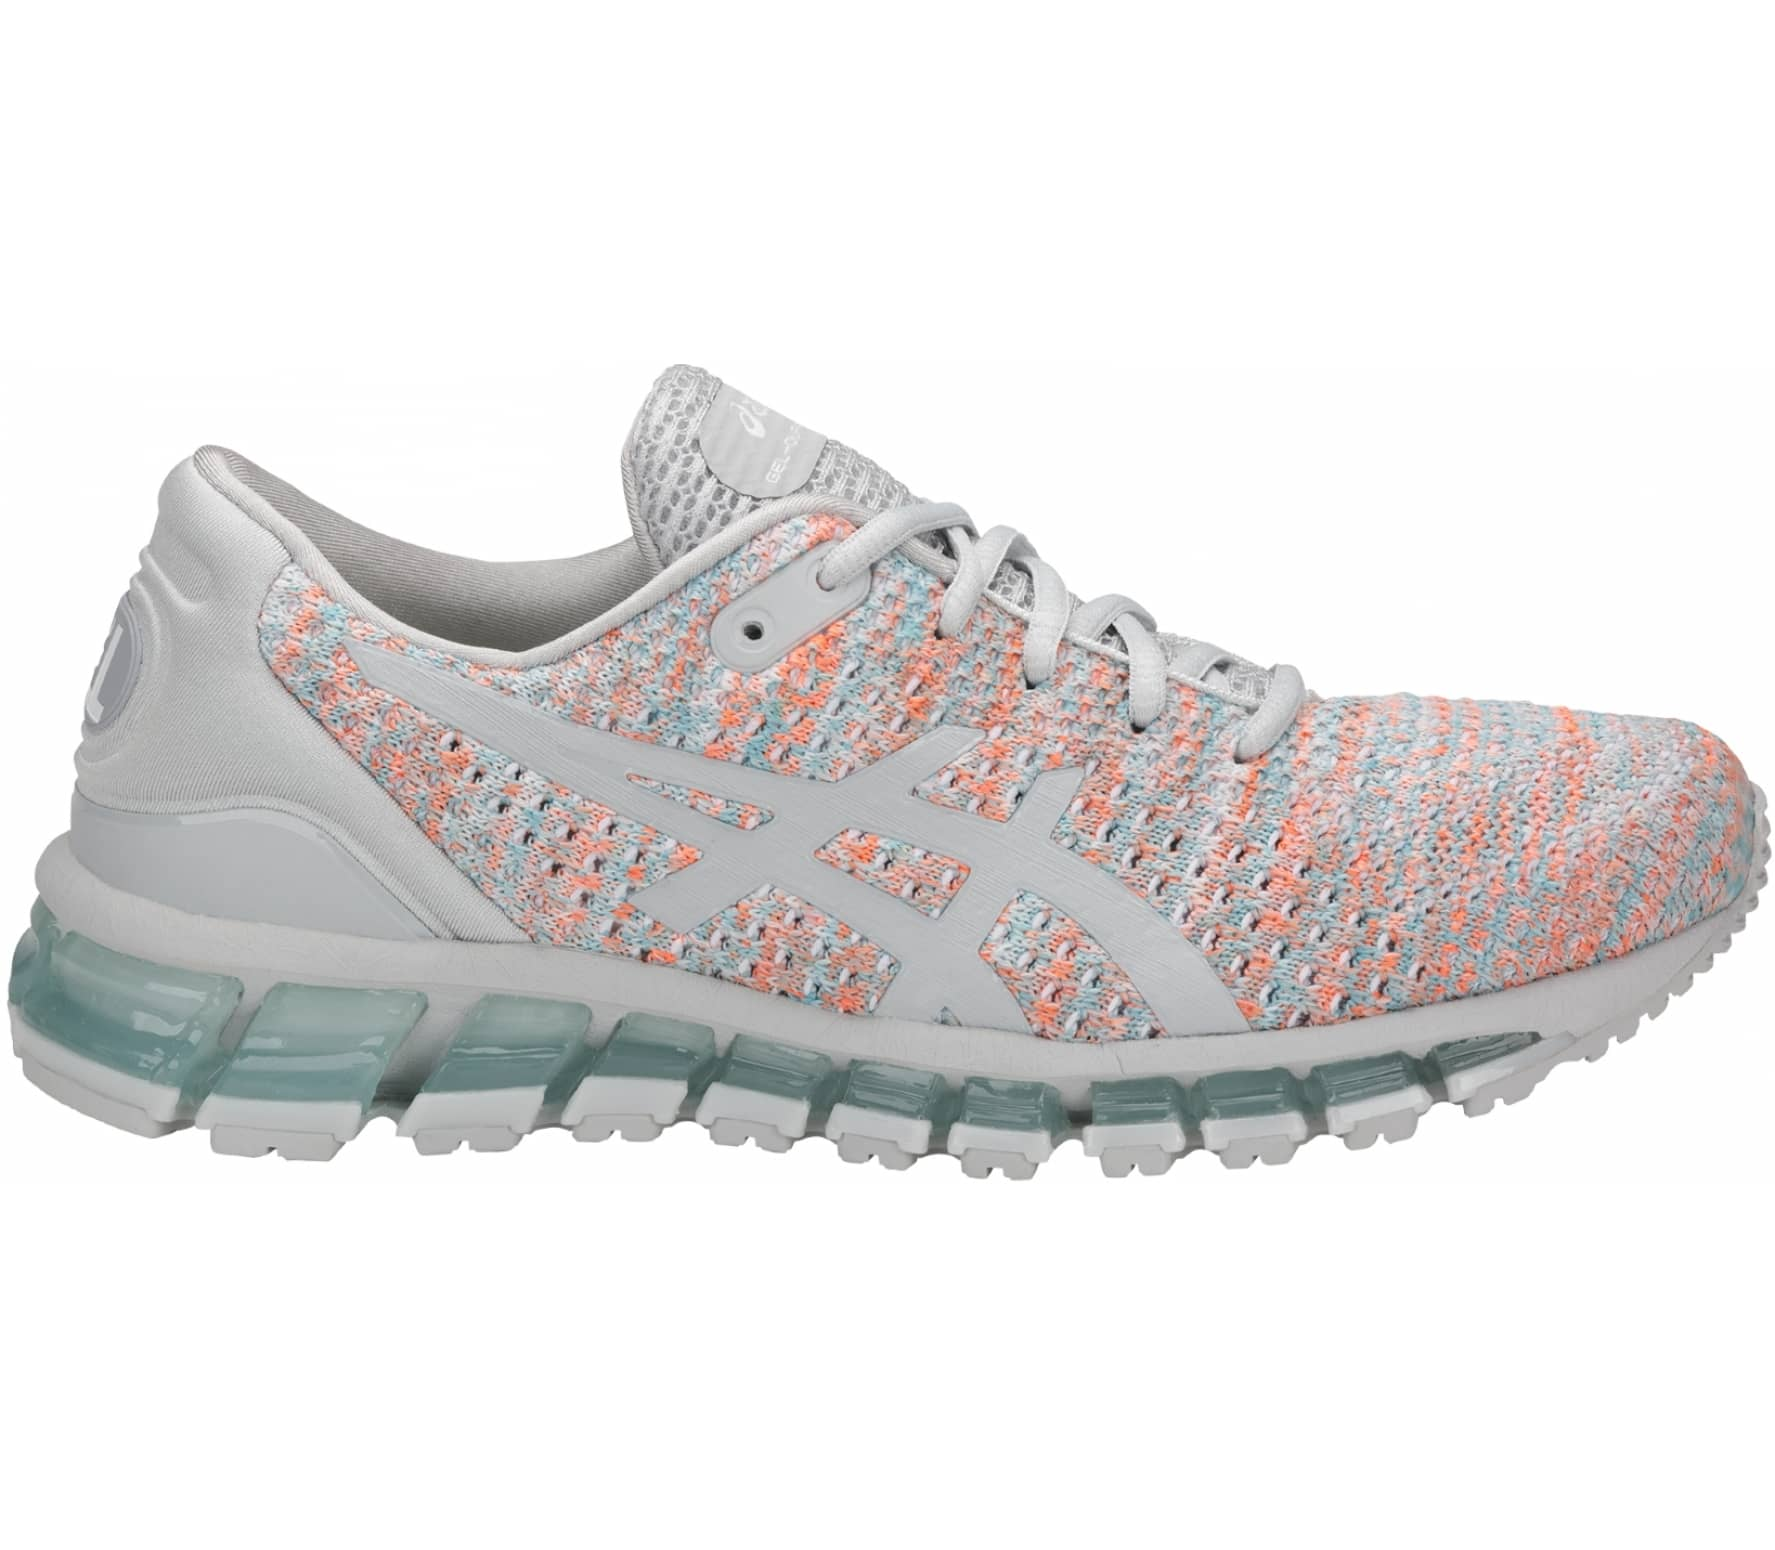 ASICS - Gel-Quantum 360 Knit 2 women s running shoes (grey orange ... 50aeff8310